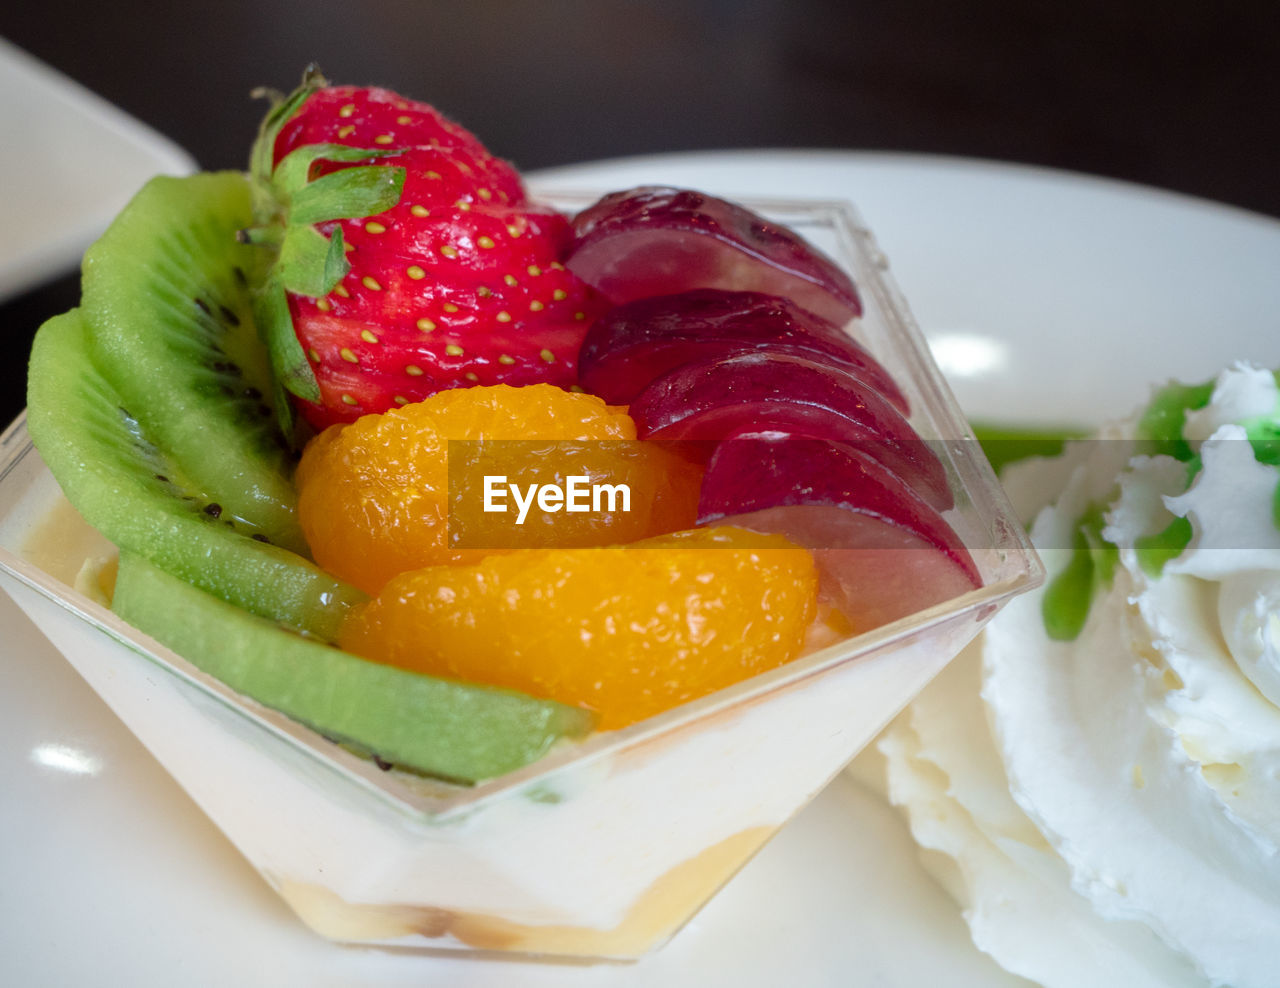 food and drink, food, freshness, healthy eating, plate, fruit, ready-to-eat, still life, indoors, close-up, serving size, wellbeing, strawberry, berry fruit, indulgence, kiwi, no people, salad, sweet food, high angle view, temptation, fruit salad, garnish, tray